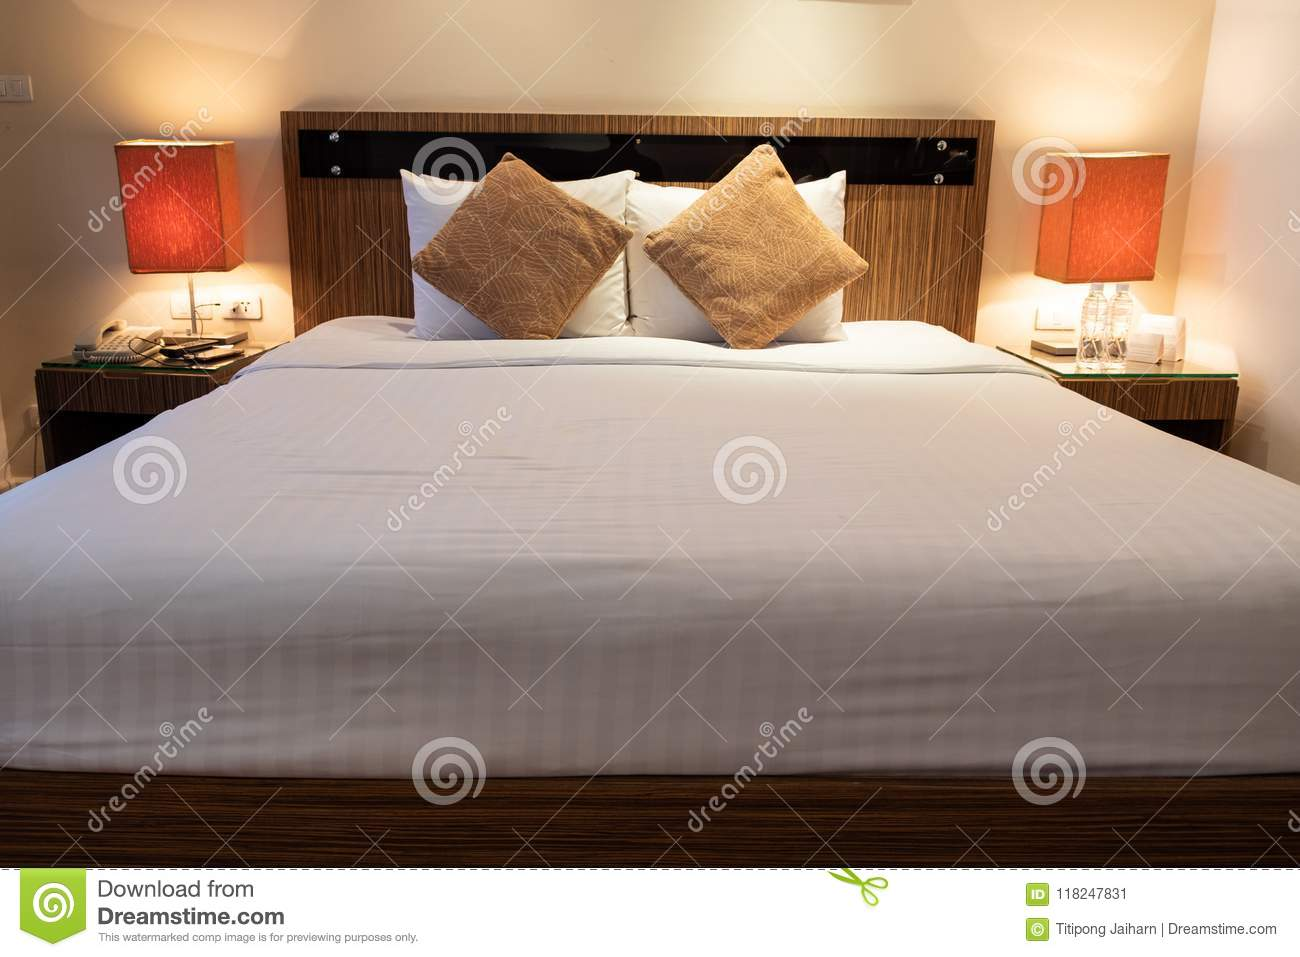 king size bed in luxury romantic room holtel stock image image of